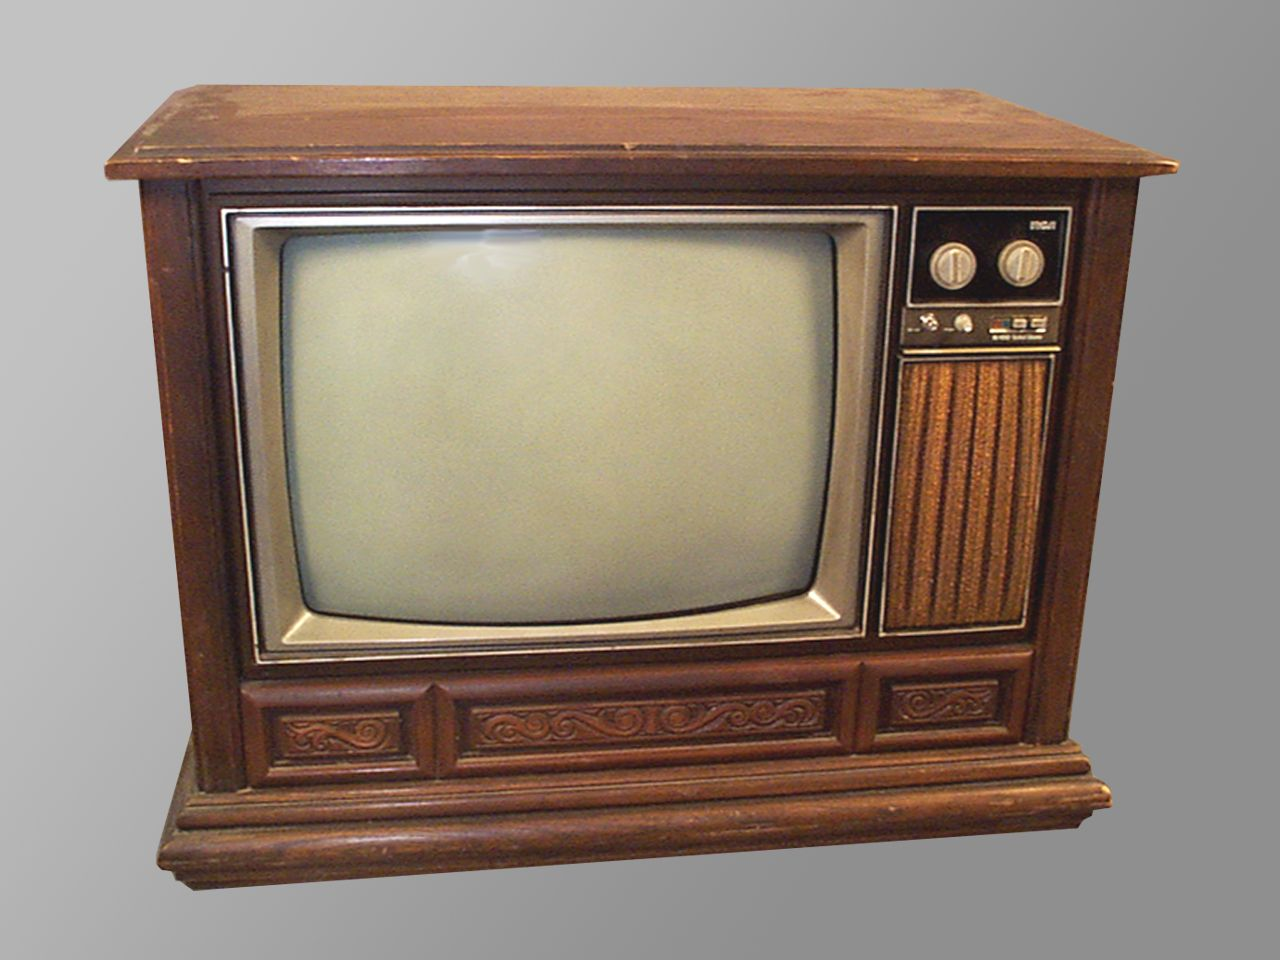 Television sets in the 1980s were often enclosed in wood and made ...